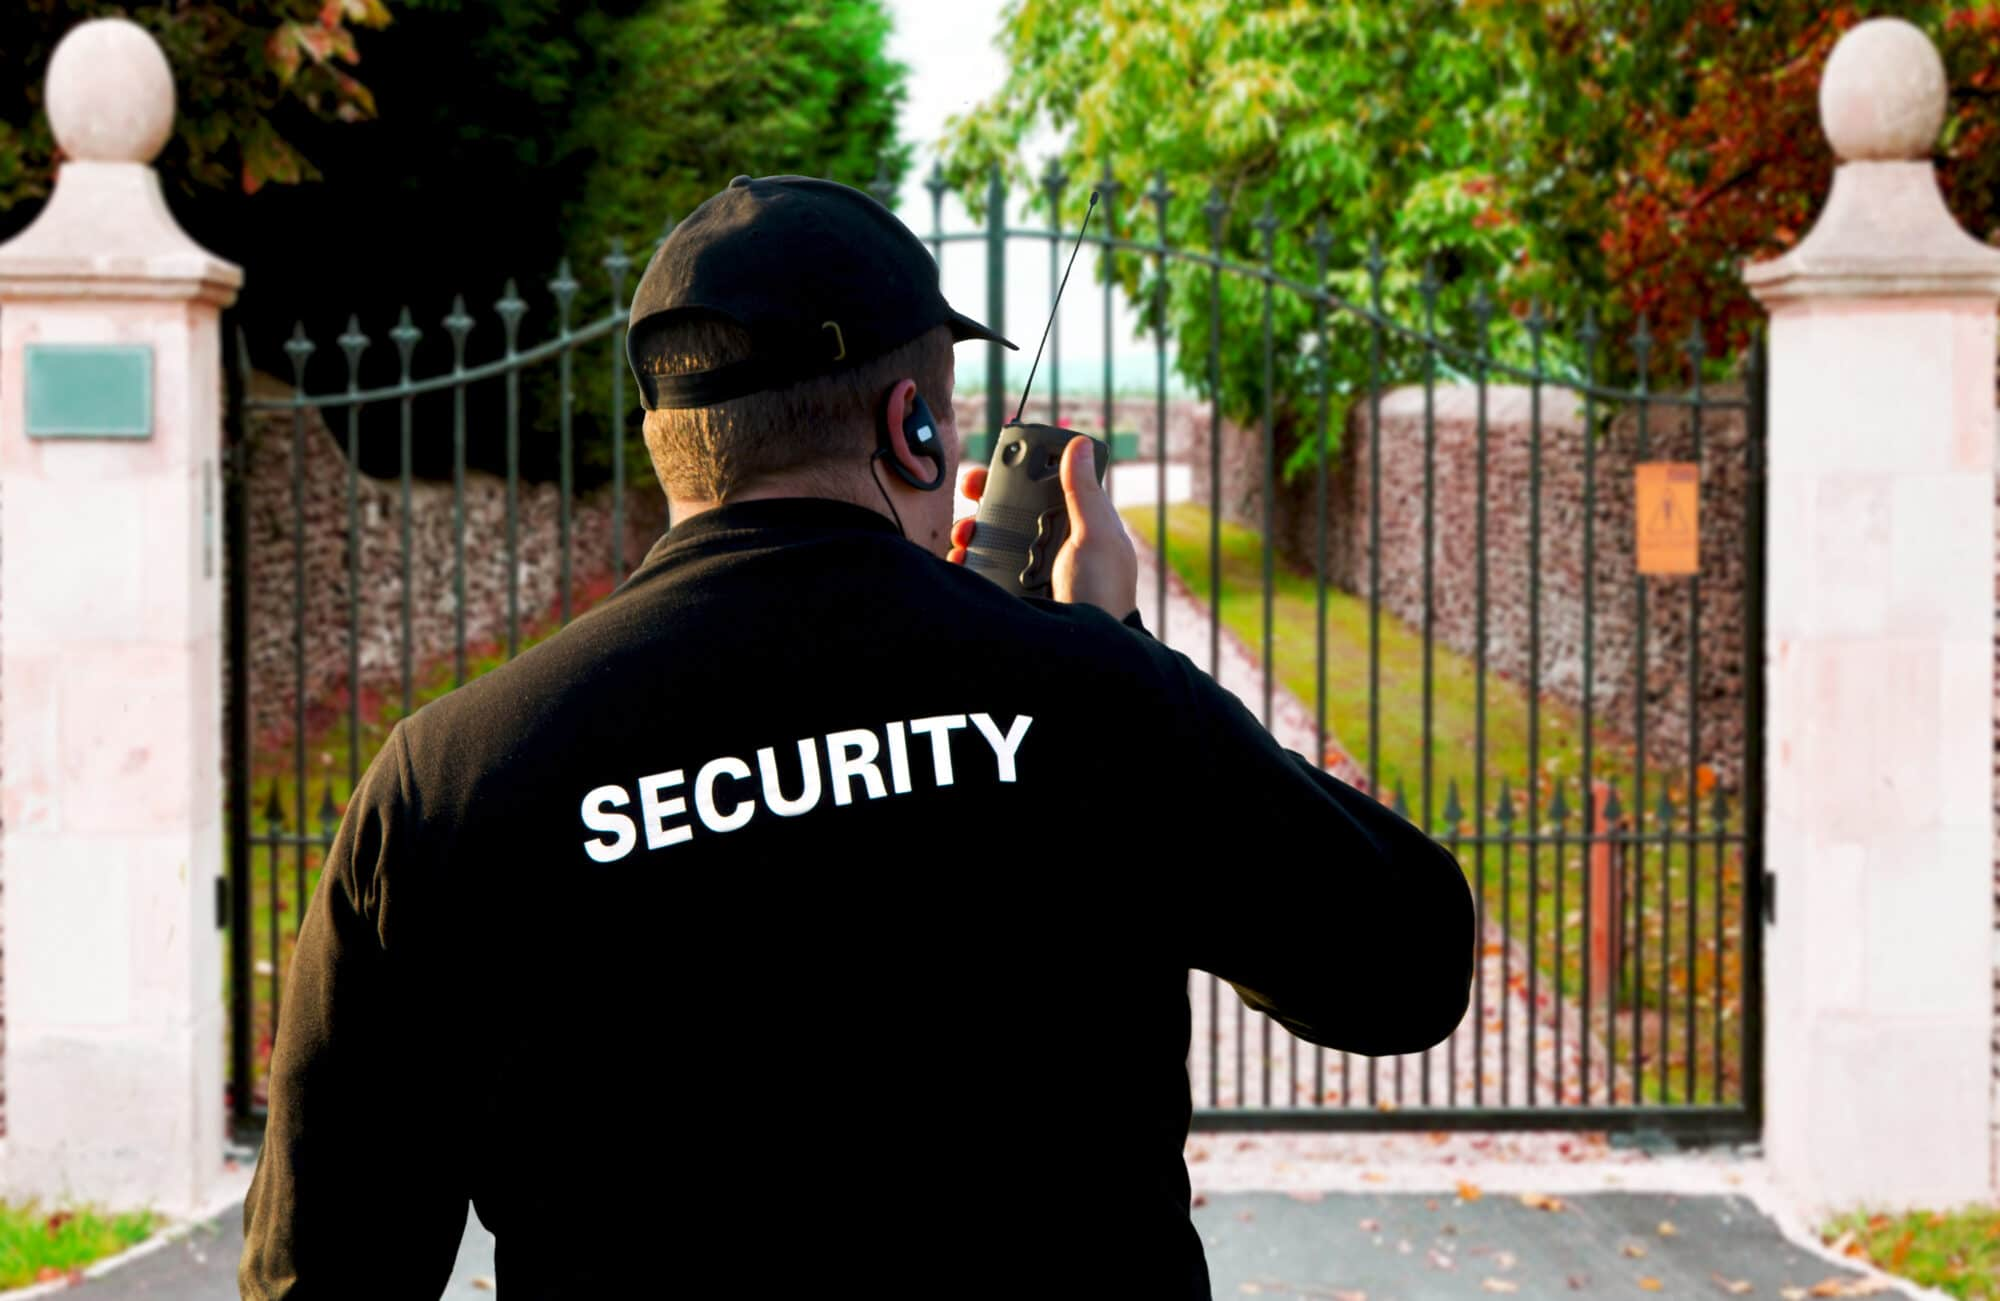 The Top 3 Benefits Of Mobile Patrol